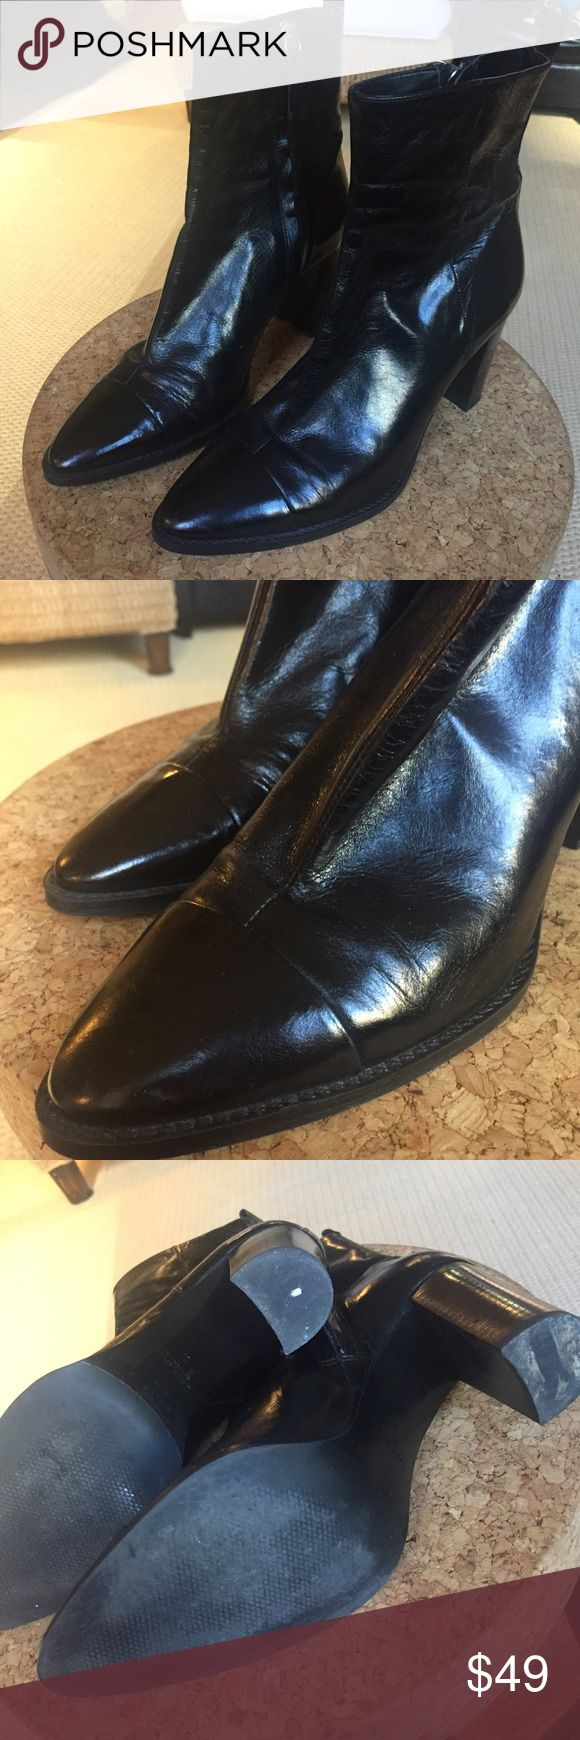 ZARA Shiney Leather Ankle Boots, Sleek! 👌🏼🖤 Worn just a few times - very reasonable heel height; a shiny sleek leather bootie, cap toe in matching leather. Really great condition, no notable flaws but just gently worn the few times. Sleek fit!! 🖤 PLEASE NOTE: These are a Zara 39, but I wear an 8.5 so I marked accordingly. Feel free to ask any possible questions! 🌸 Zara Shoes Ankle Boots & Booties